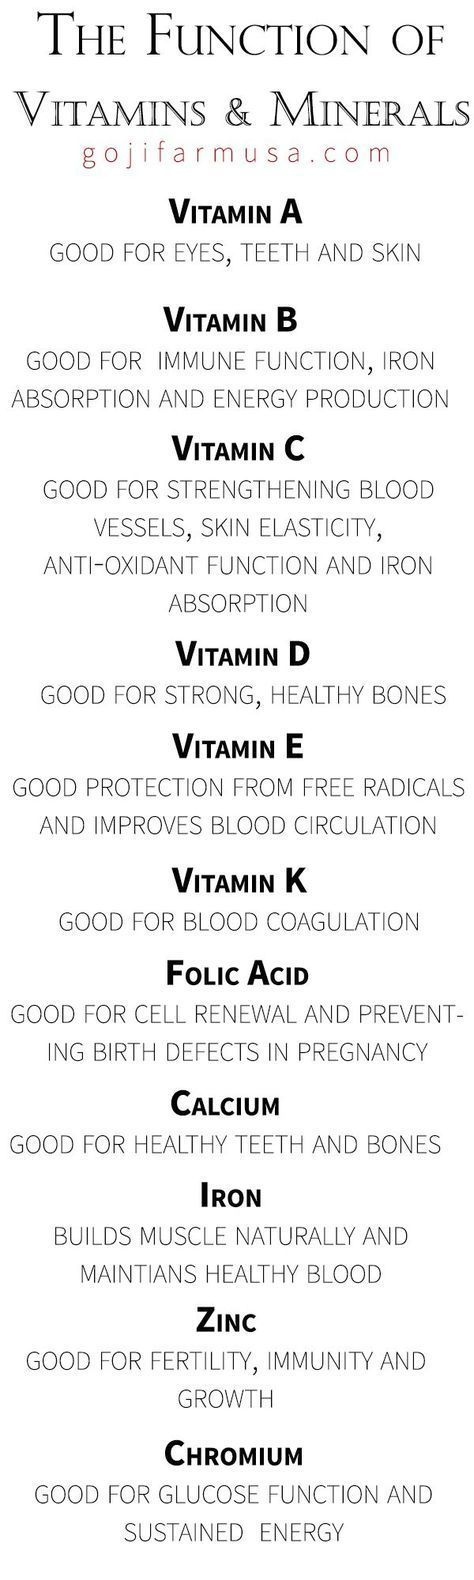 Grab your supplements here! Good to know is part of Health fitness - Facebook Twitter Google+ Pinterest Grab your supplements here! Good to know Source by reneevidales